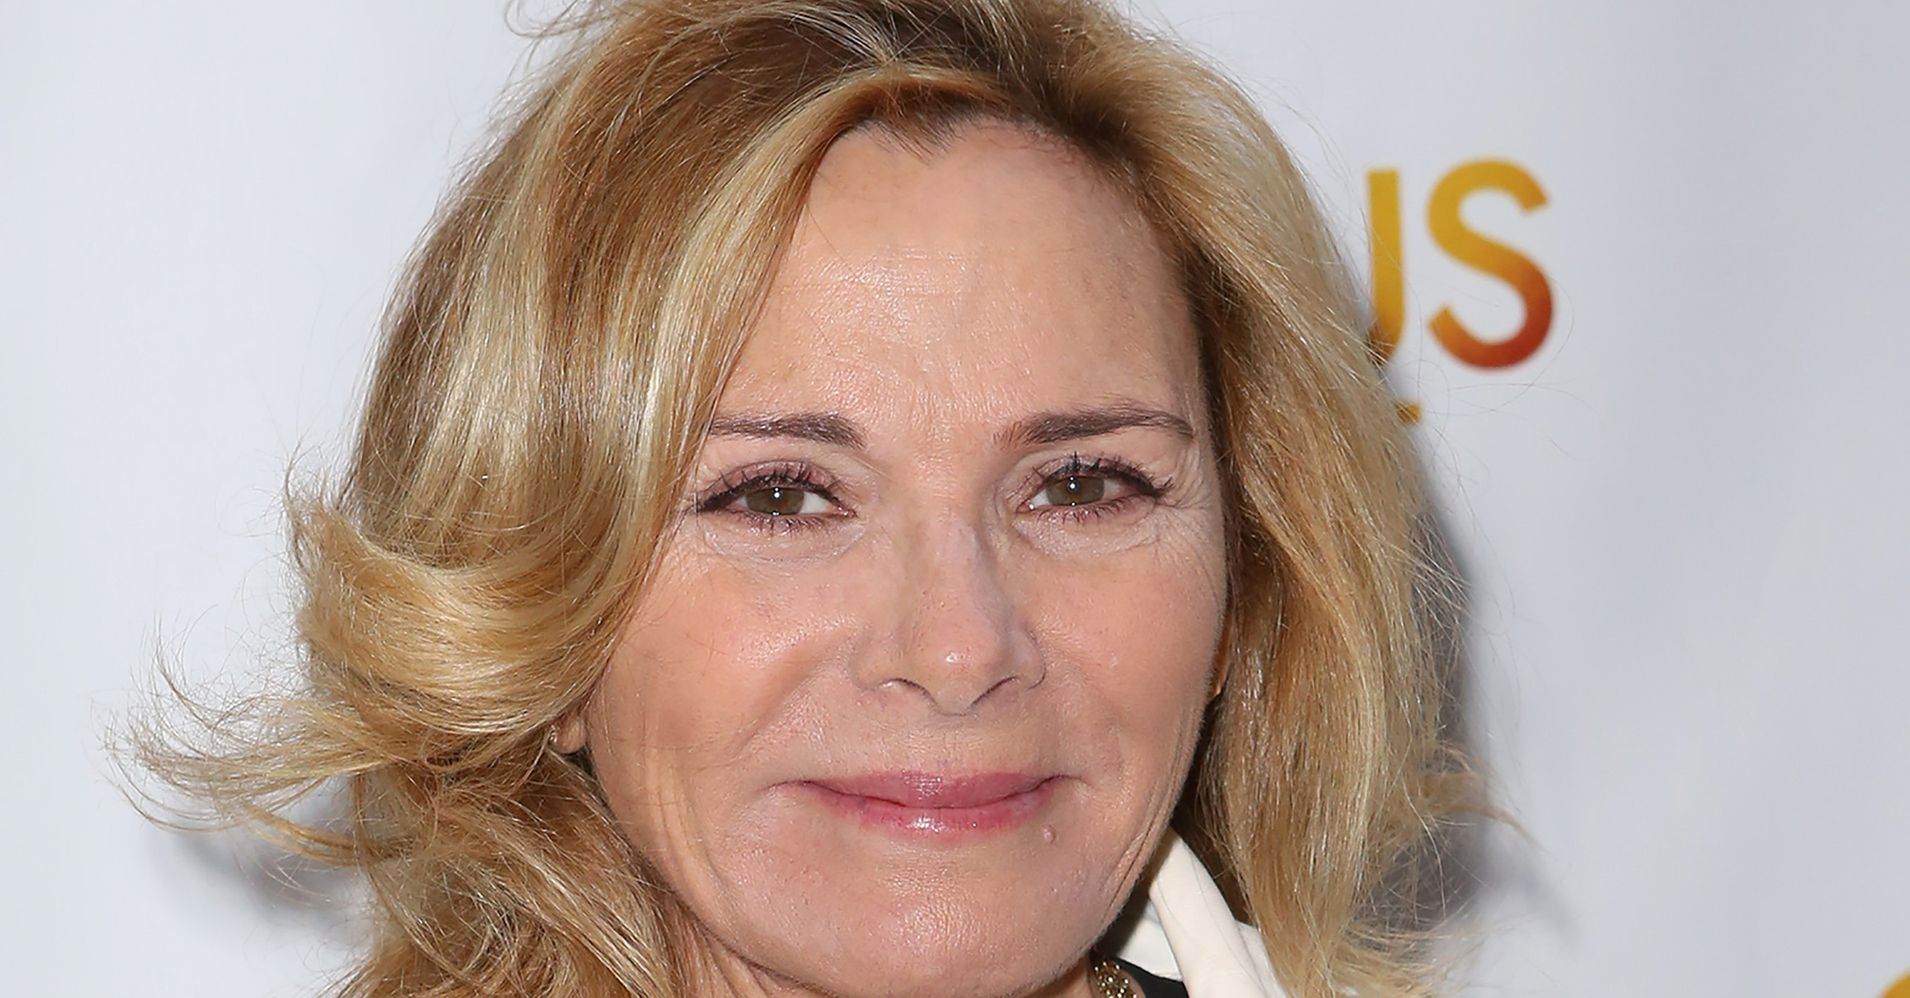 kim cattrall dating Kim cattrall is a 62 year old british actress born kim victoria cattrall on 21st august, 1956 in mossley hill, liverpool, england, she is famous for samantha on sex and the city born kim victoria cattrall on 21st august, 1956 in mossley hill, liverpool, england, she is famous for samantha on sex and the city.